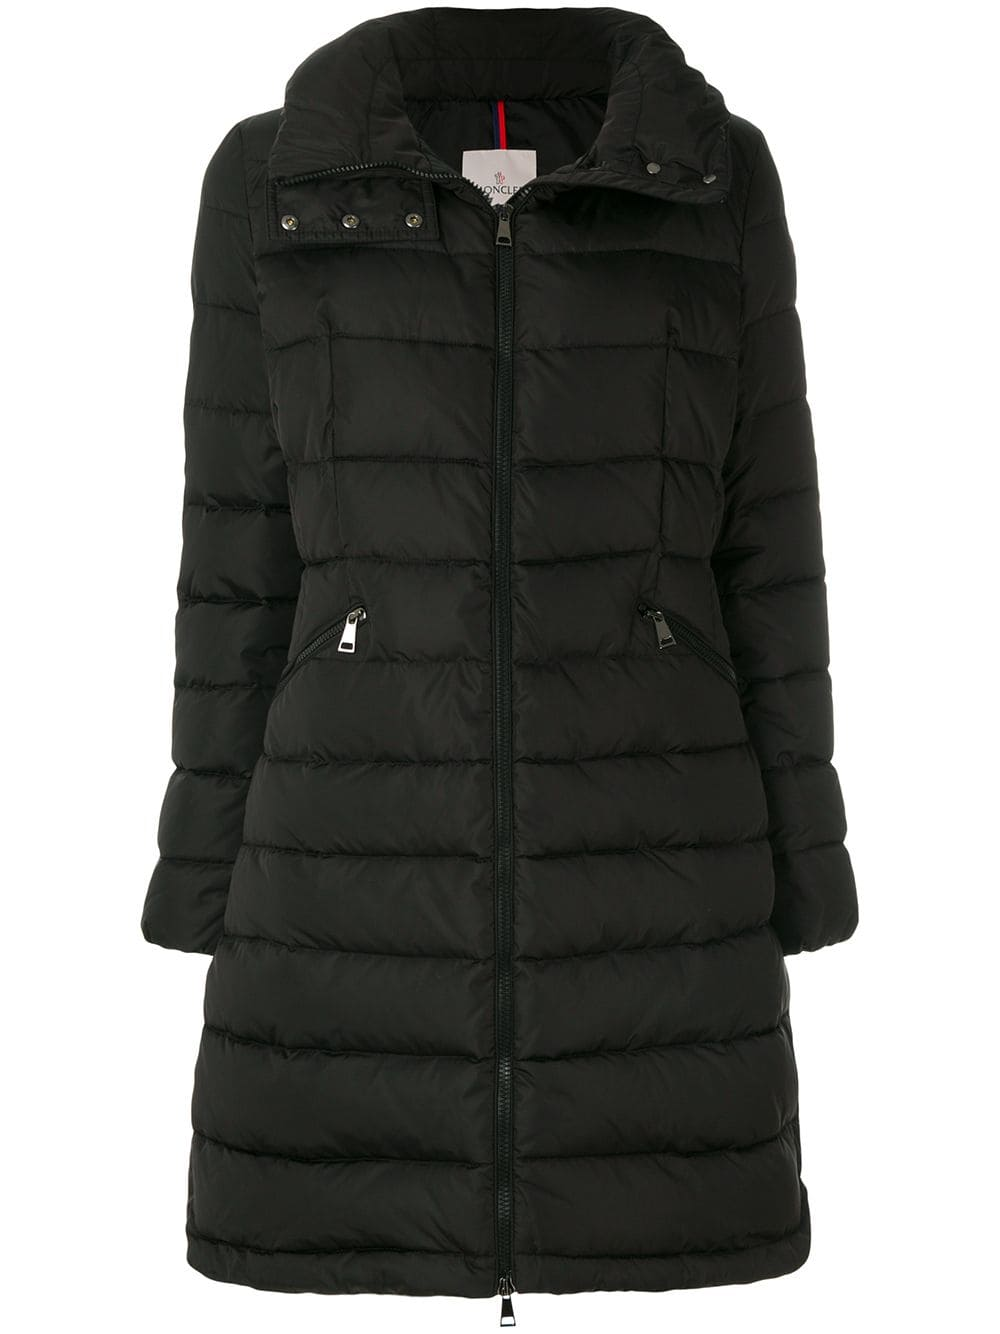 Flammette padded coat by Moncler, available on farfetch.com for EUR1802 Cindy Crawford Outerwear Exact Product